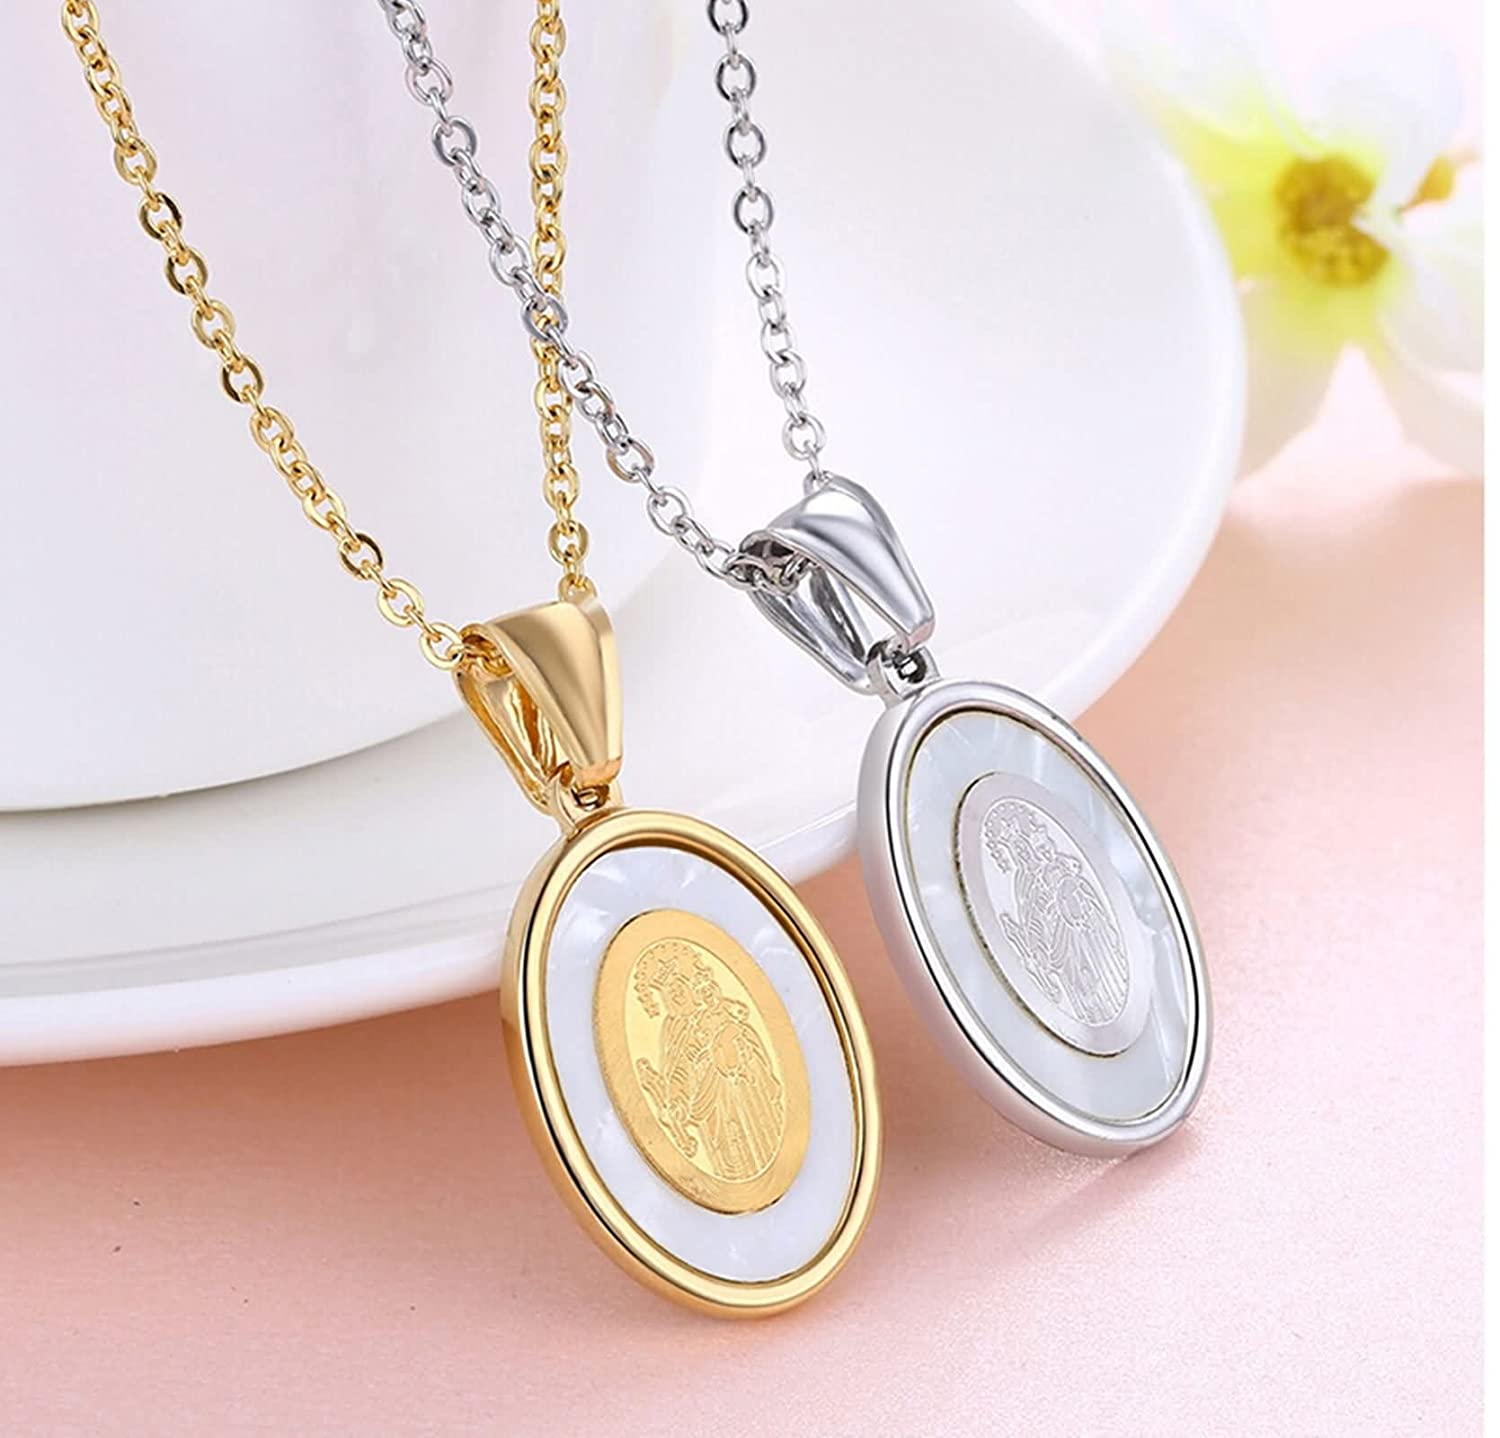 Amazon.com: AMDXD Jewelry Stainless Steel Pendant Necklaces for Women Virgin Mary Oval Gold Pendant: Jewelry